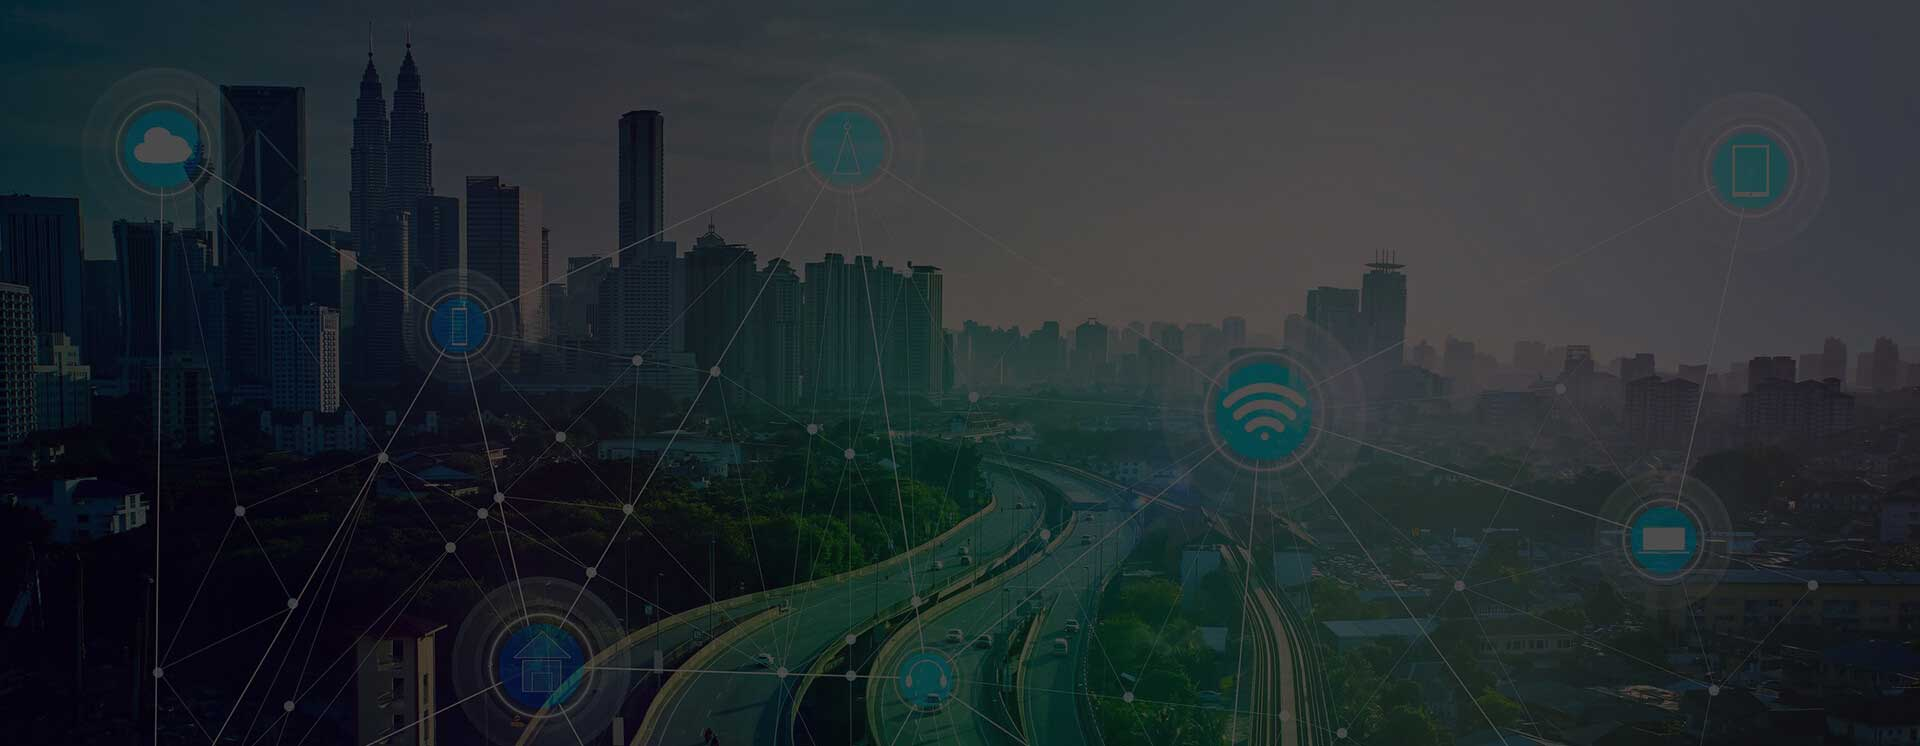 Planning to bridge the physical and digital world with an IoT project? Bacancy can help.